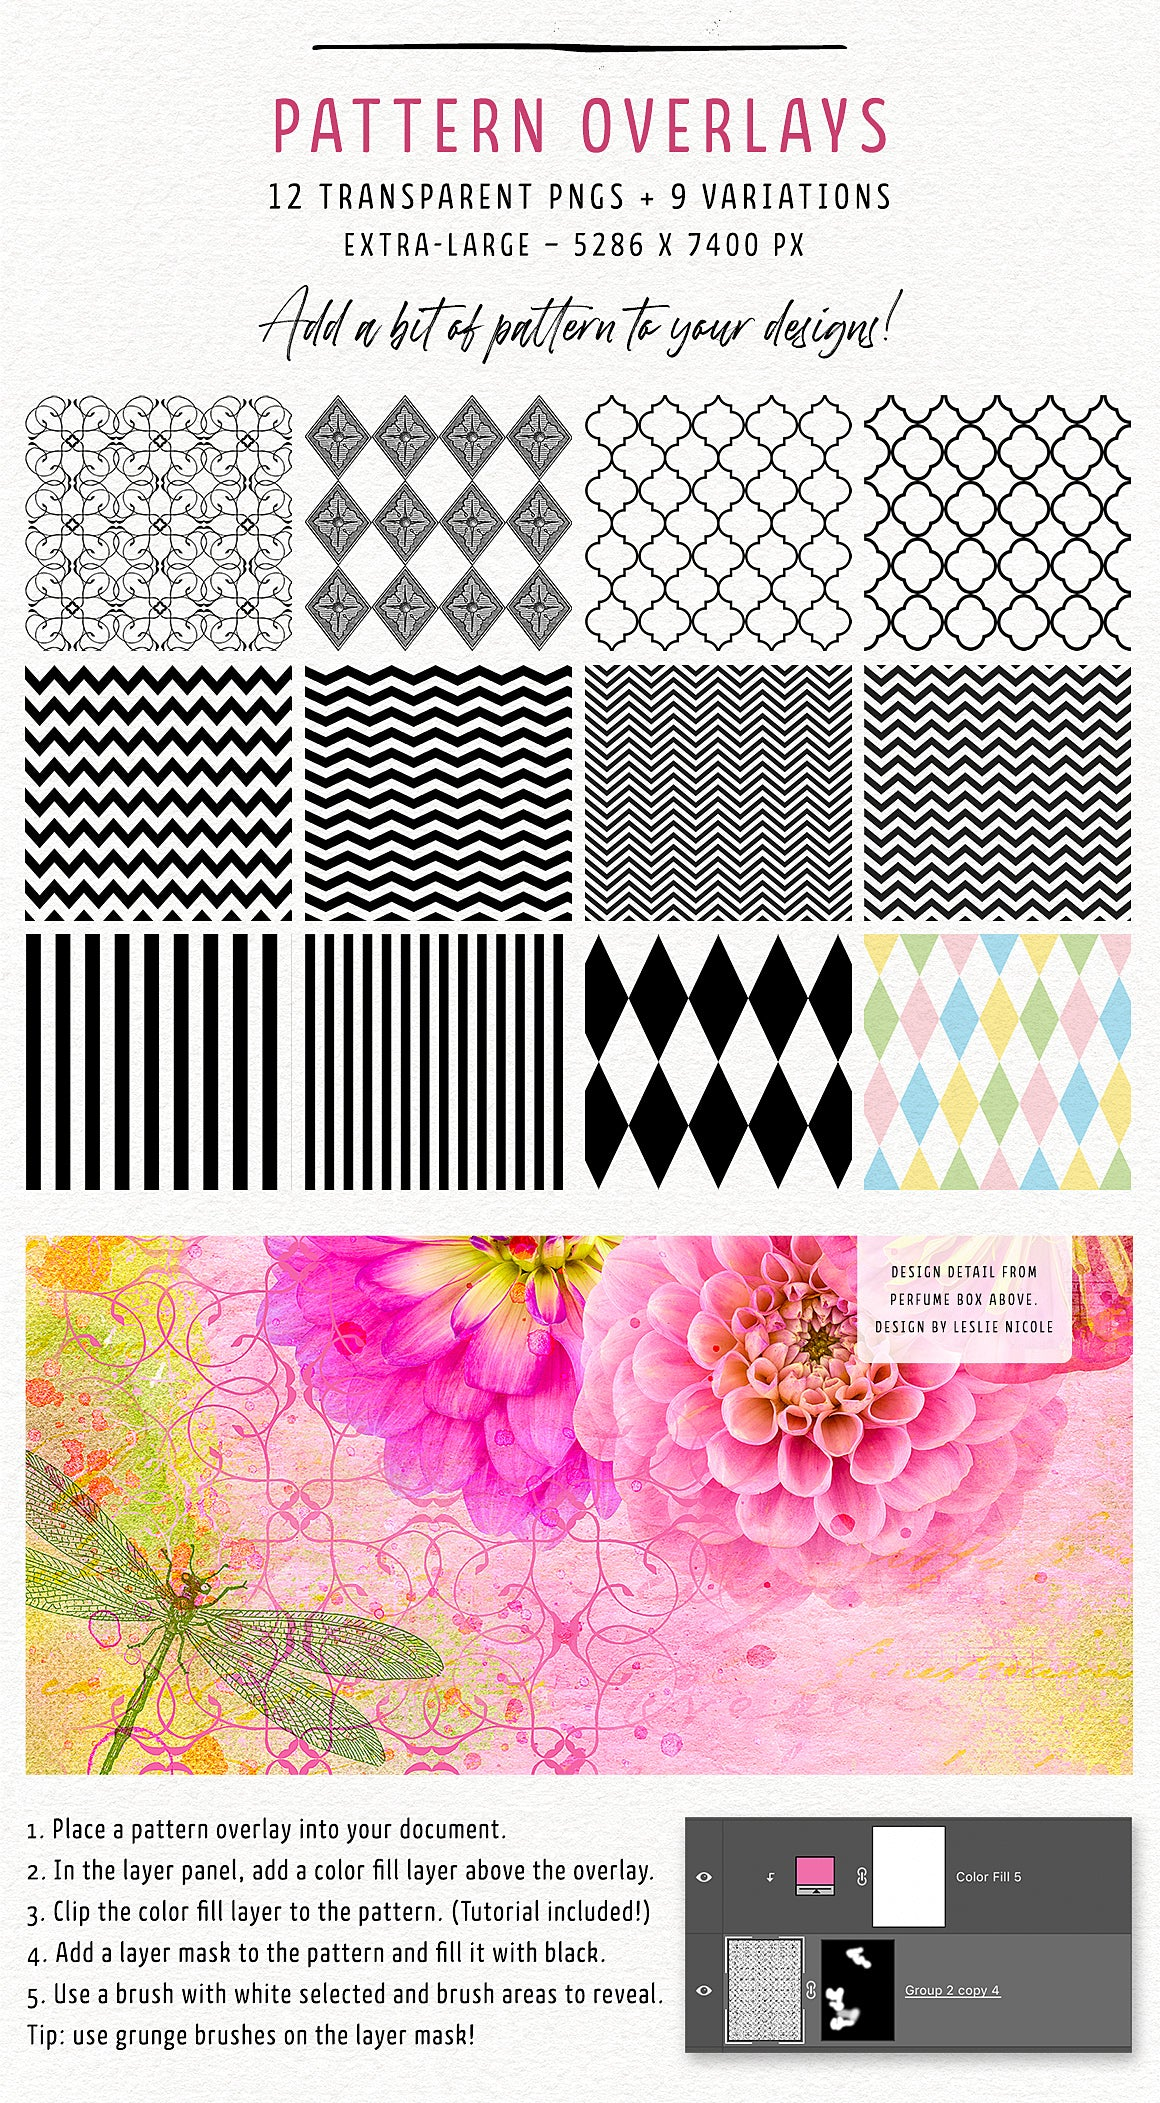 Pattern overlays in the Complete Inspirational Textures and Elements Collection.